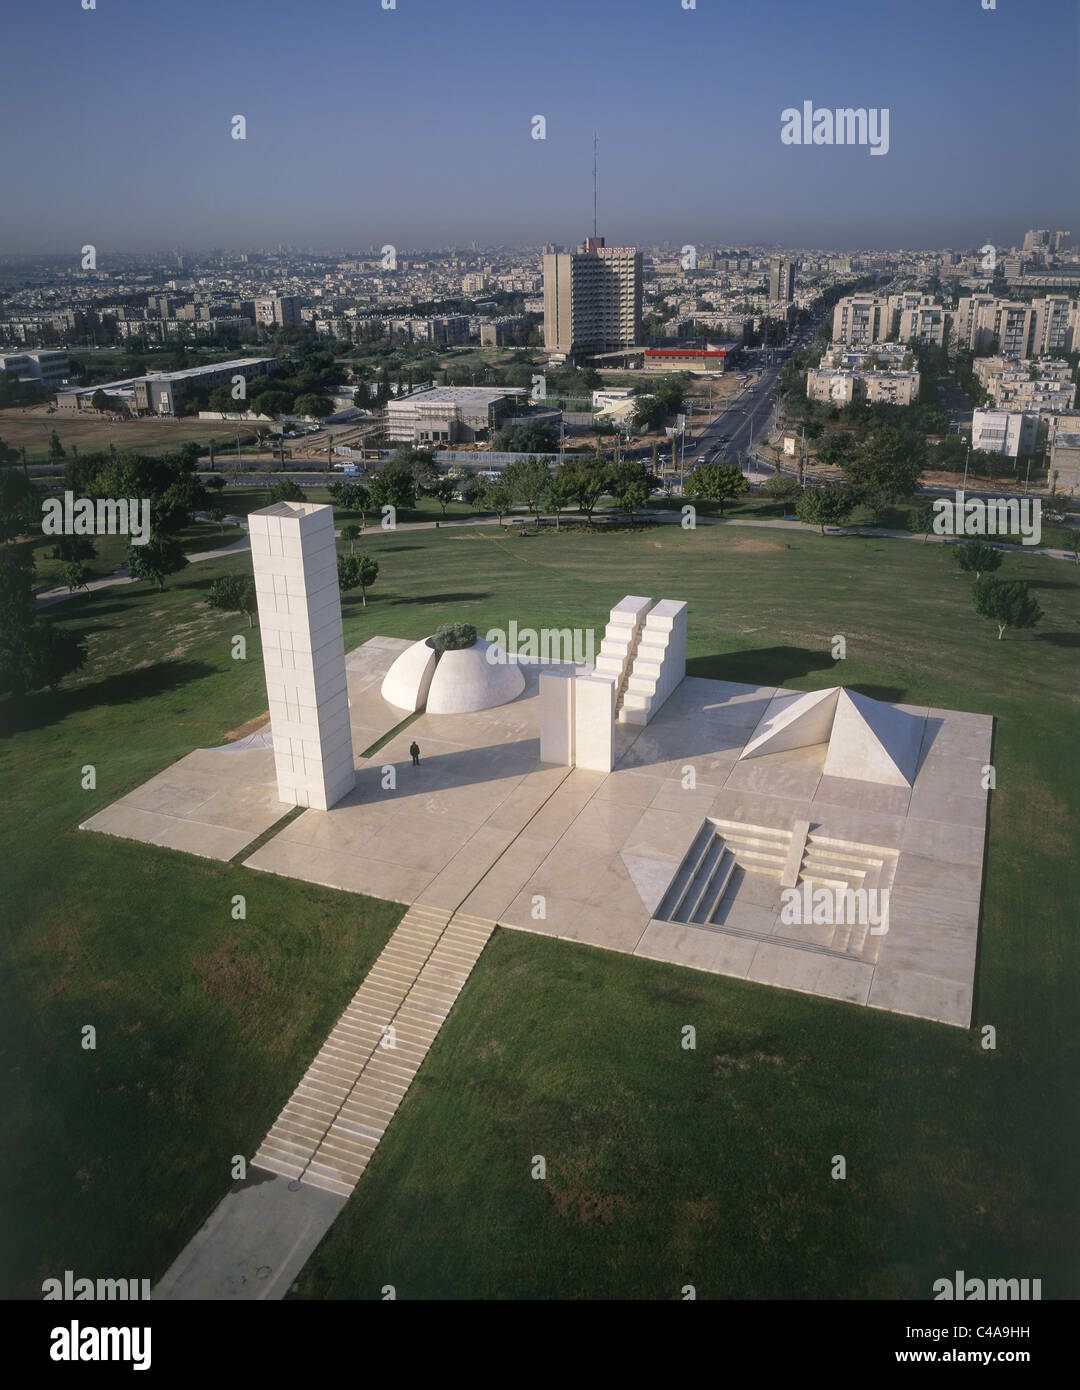 Aerial photograph of a statue in the Edith Wolfson Park in Tel Aviv - Stock Image